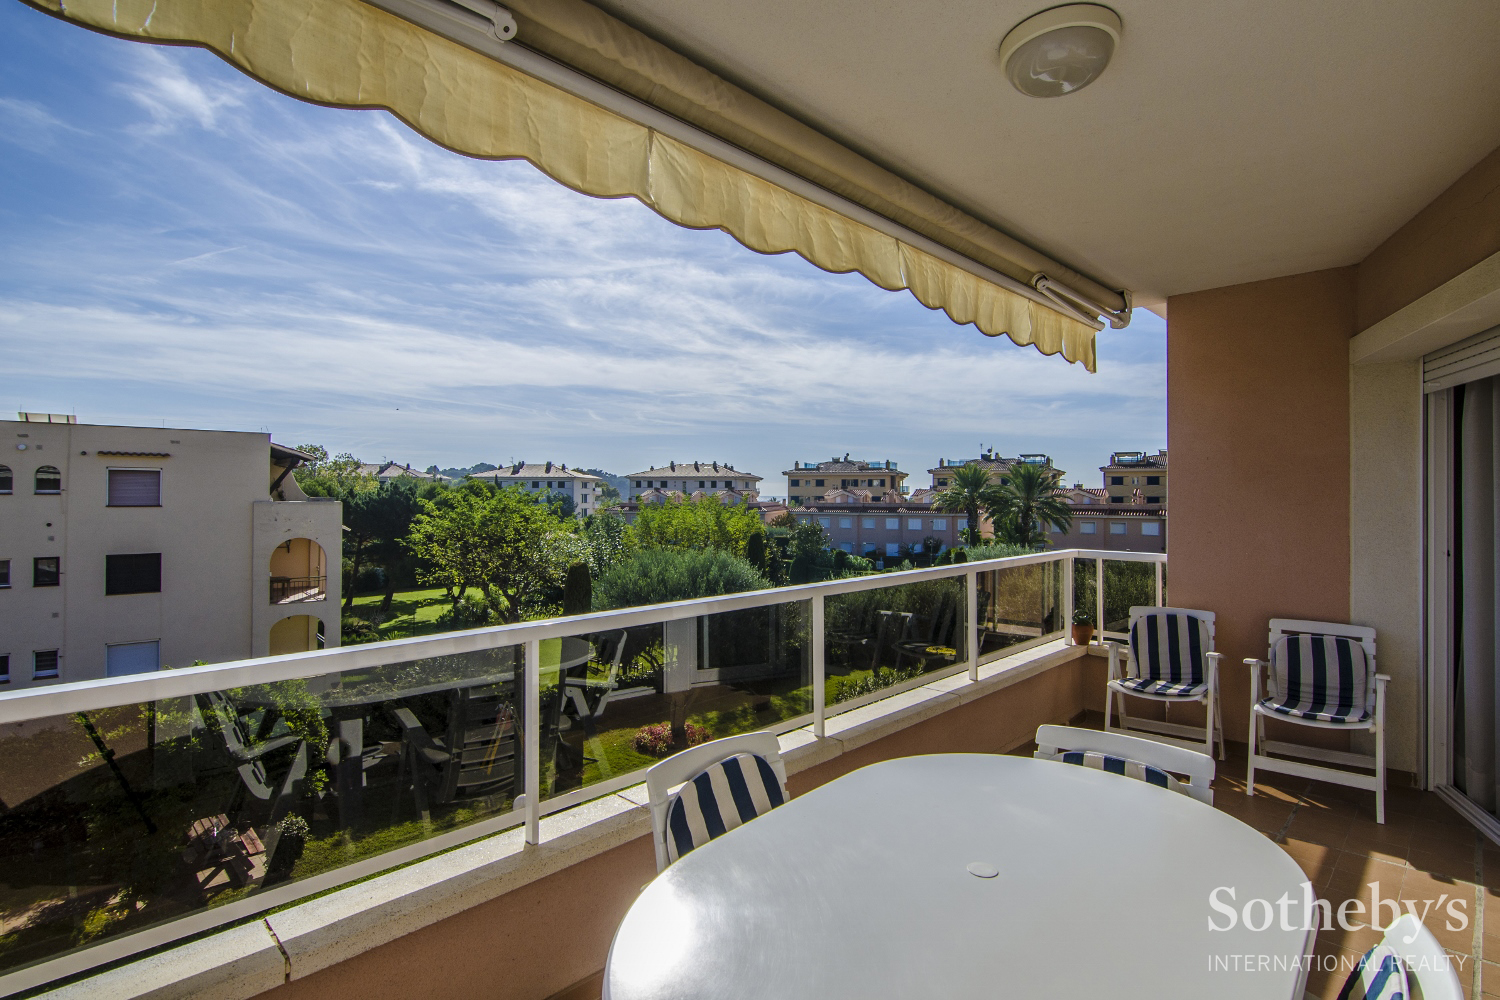 Apartment for Sale at Nice duplex penthouse in S'Agaró just 150 metres from the beach S'Agaro, Costa Brava 17248 Spain